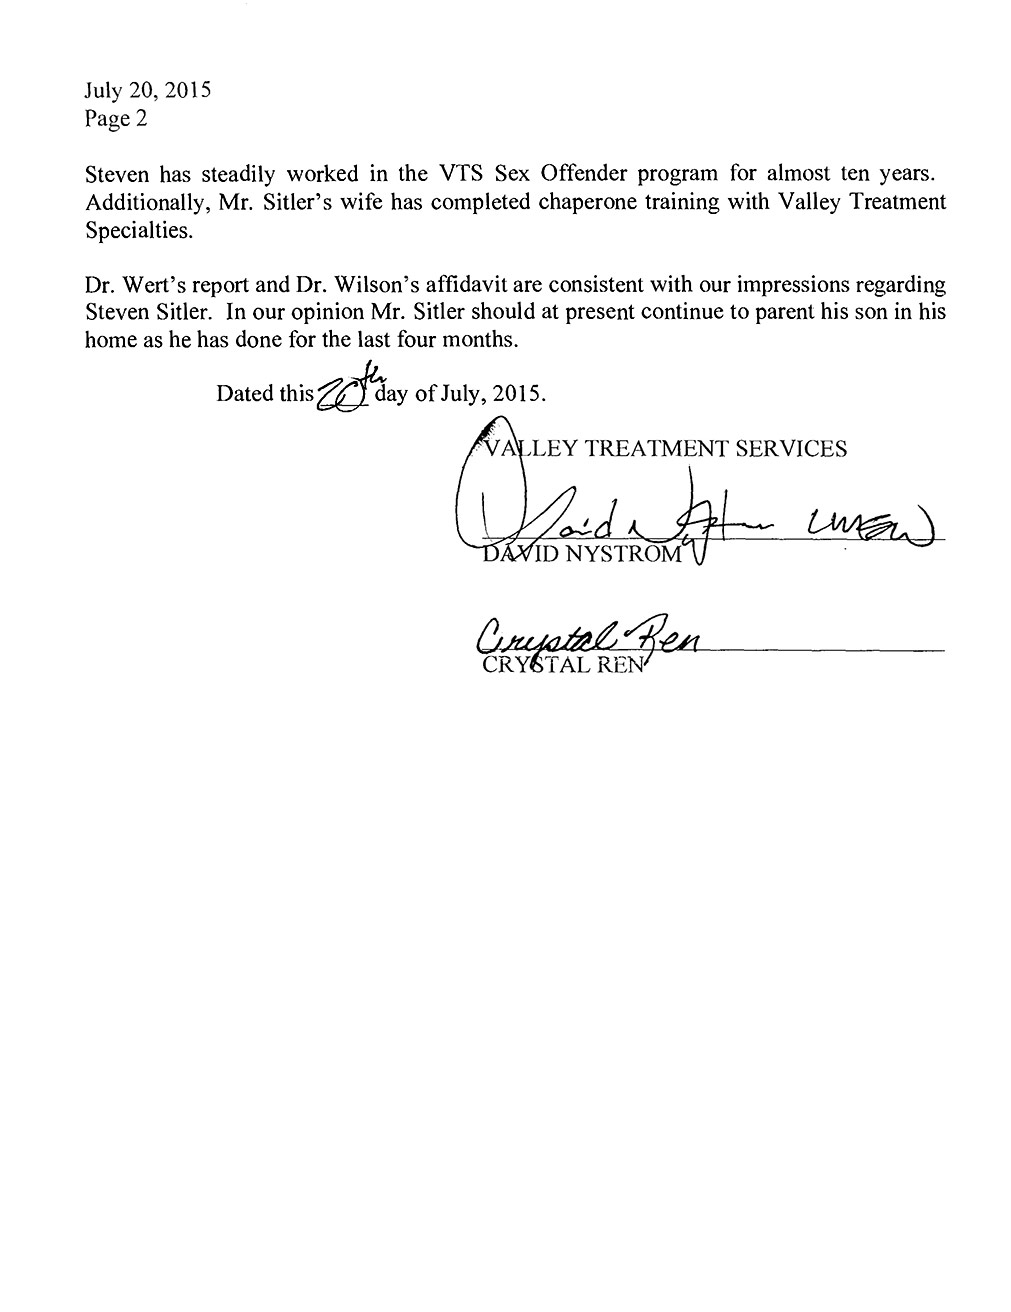 Valley Treatment Specialties to Judge Stegner page 2